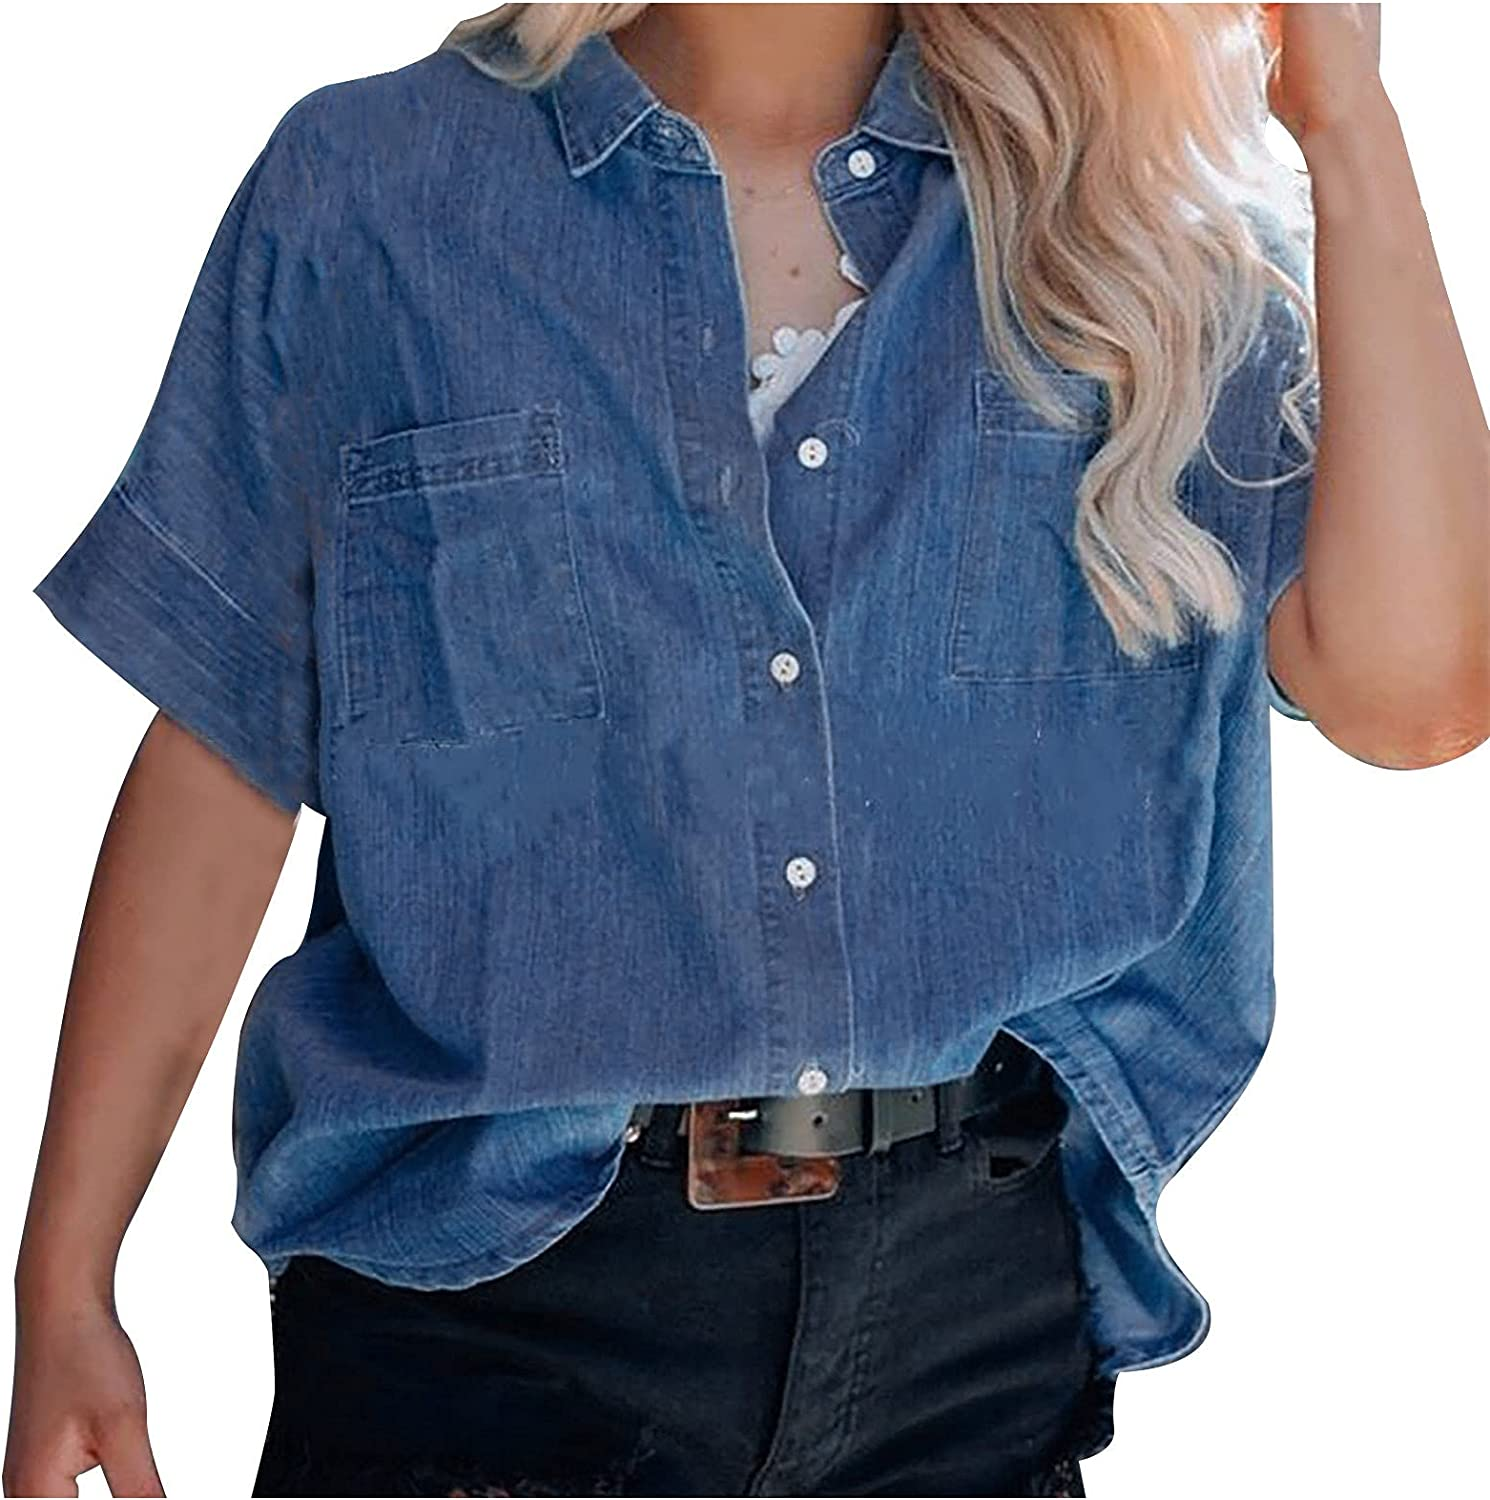 ovticza Tank Tops for Women Womens V Neck Shirts Loose Blouse Short Sleeve Button Down Casual Work Tops